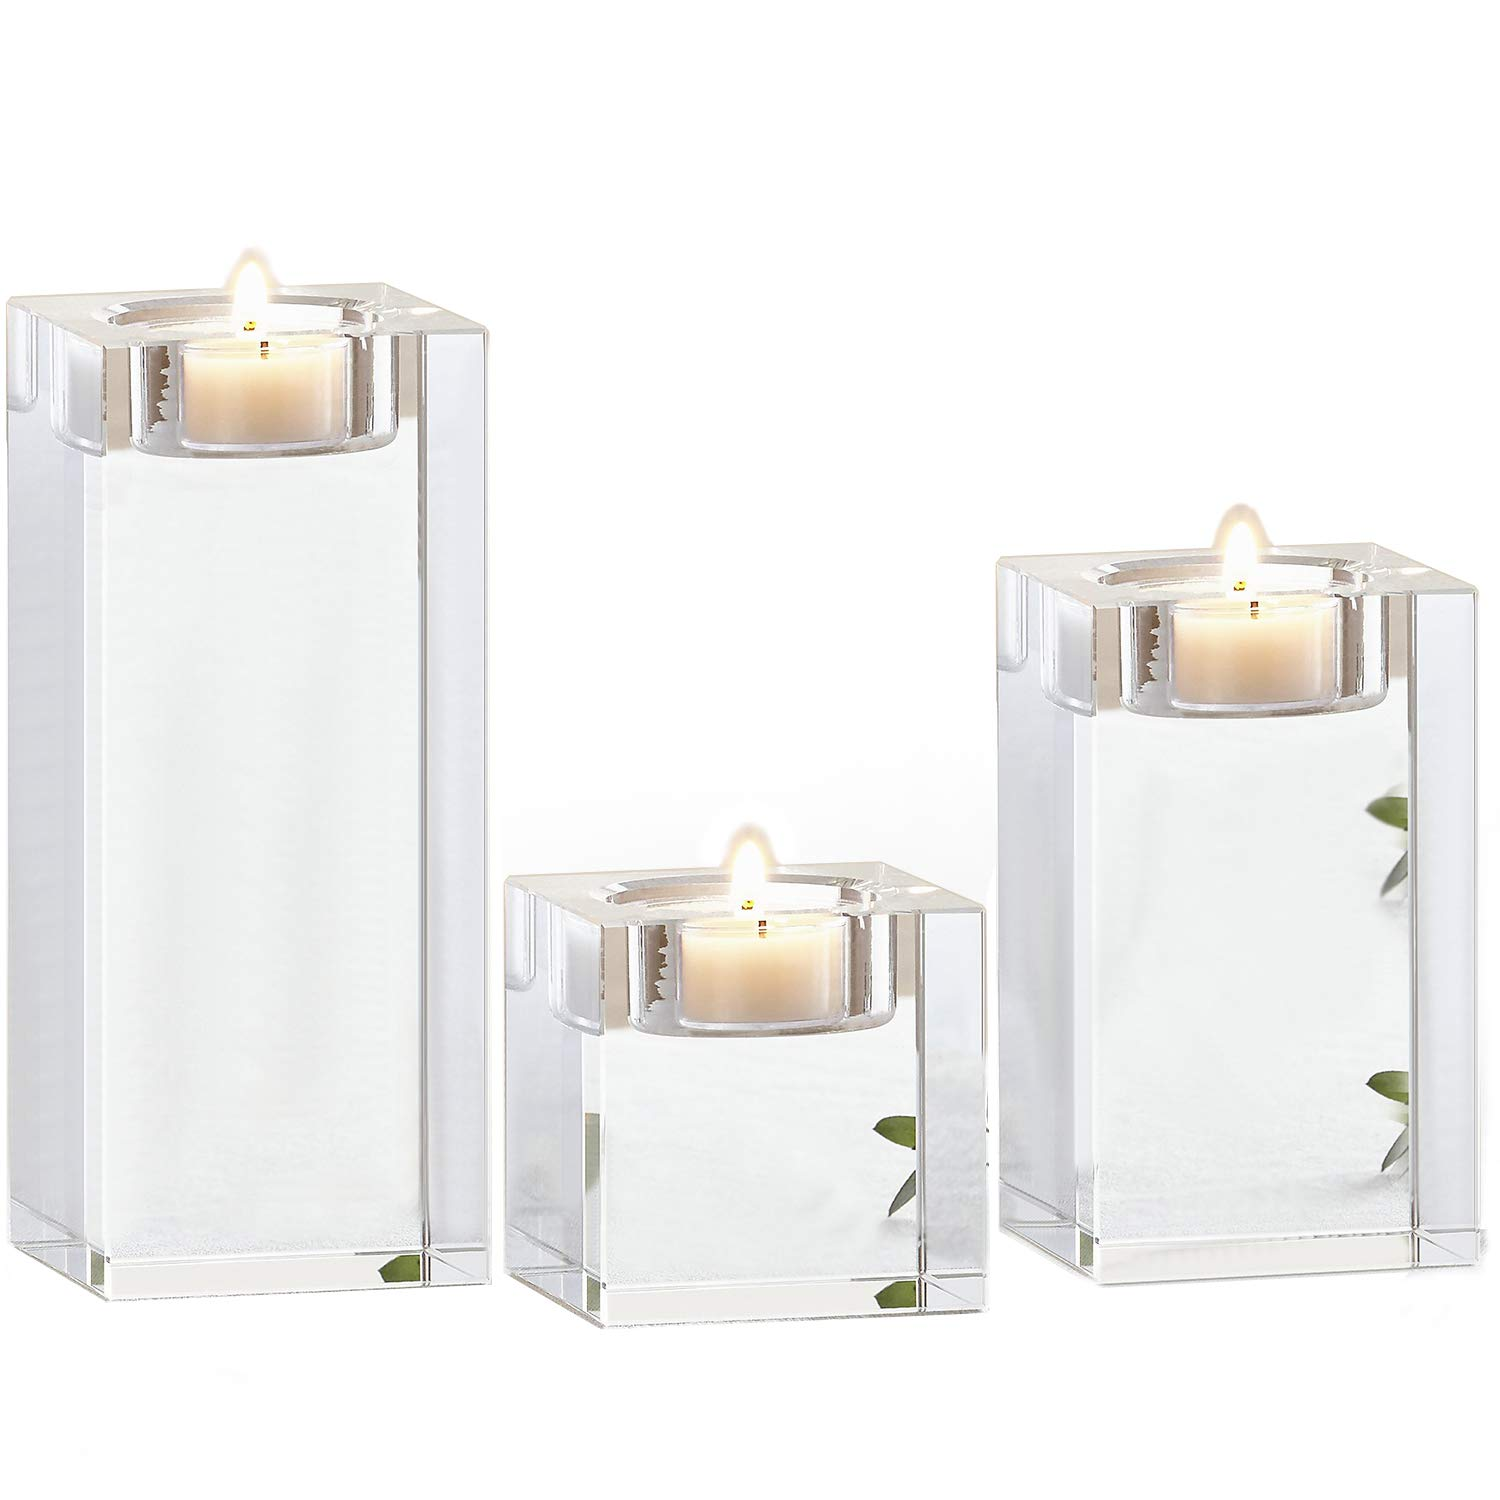 Amazing Home Candle Holders Set of 3, 2.3/3.9/5.5 inches Height Elegant Heavy Crystal Tealight Holder Clear Square Glass Cube Candle Holder for Wedding Centerpiece and Home Decor